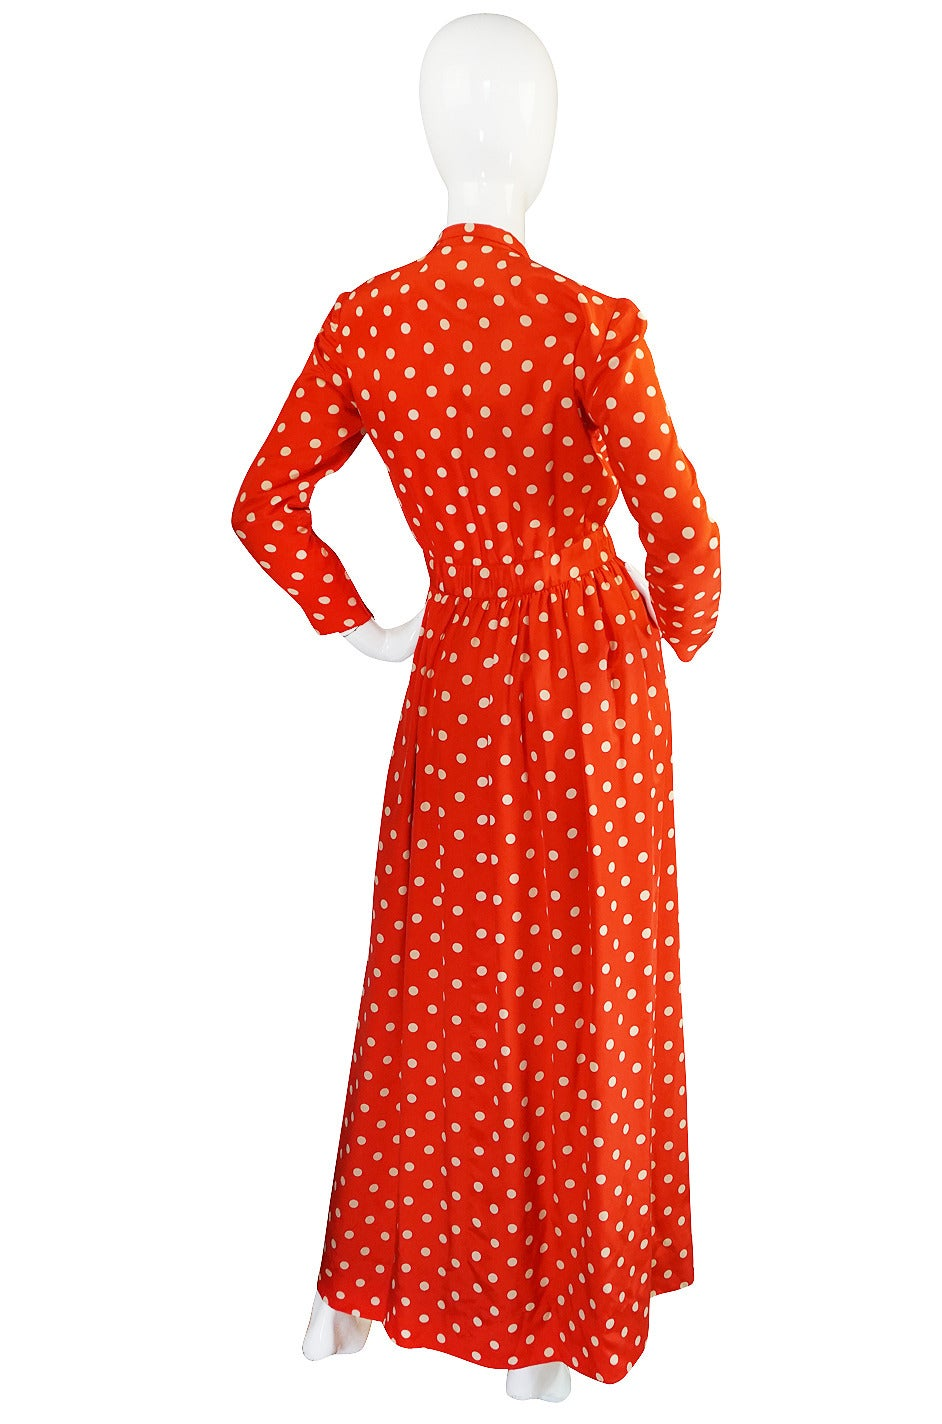 c1972-76 Norell Tassell Dotted Red Maxi Dress For Sale 1